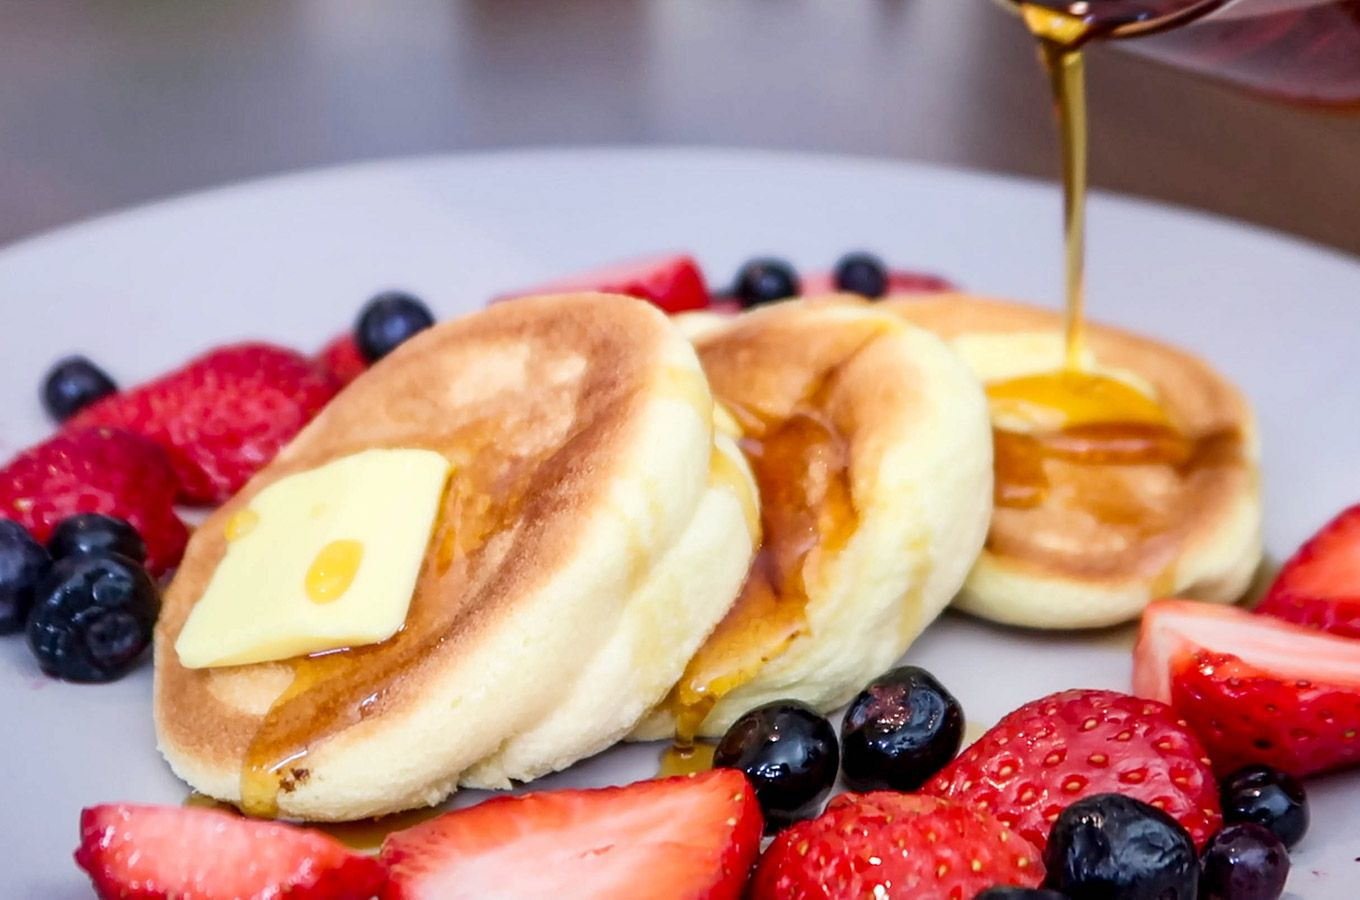 Souffle Pancakes Lessons Learned Recipe In 2020 Souffle Pancakes Brunch Cafe Pancakes